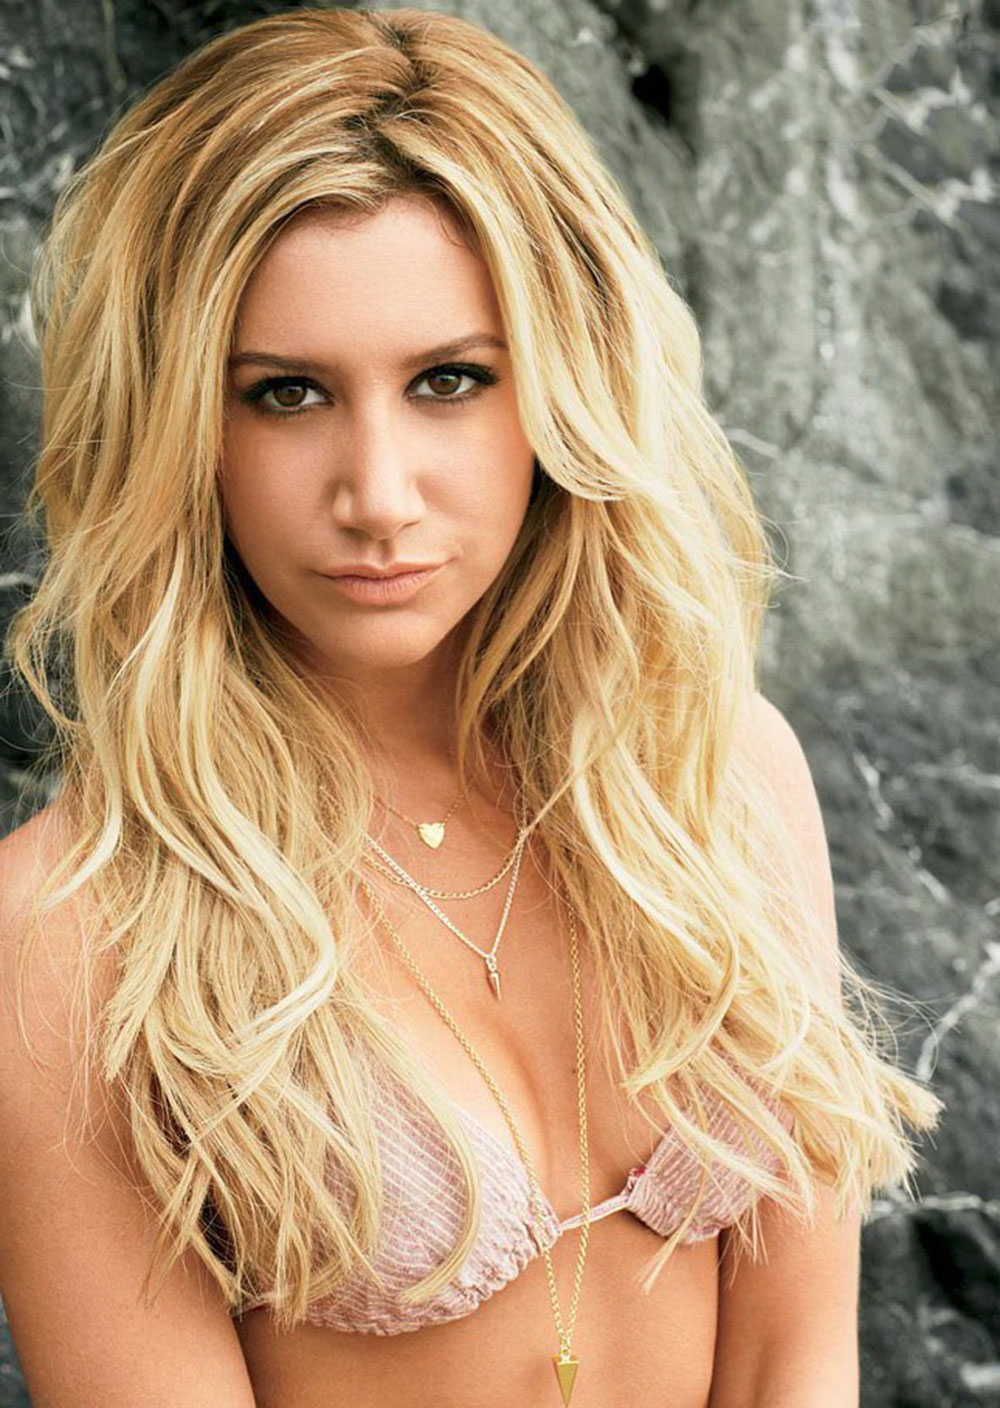 Ashley Tisdale nude (27 foto and video), Sexy, Fappening, Selfie, underwear 2006